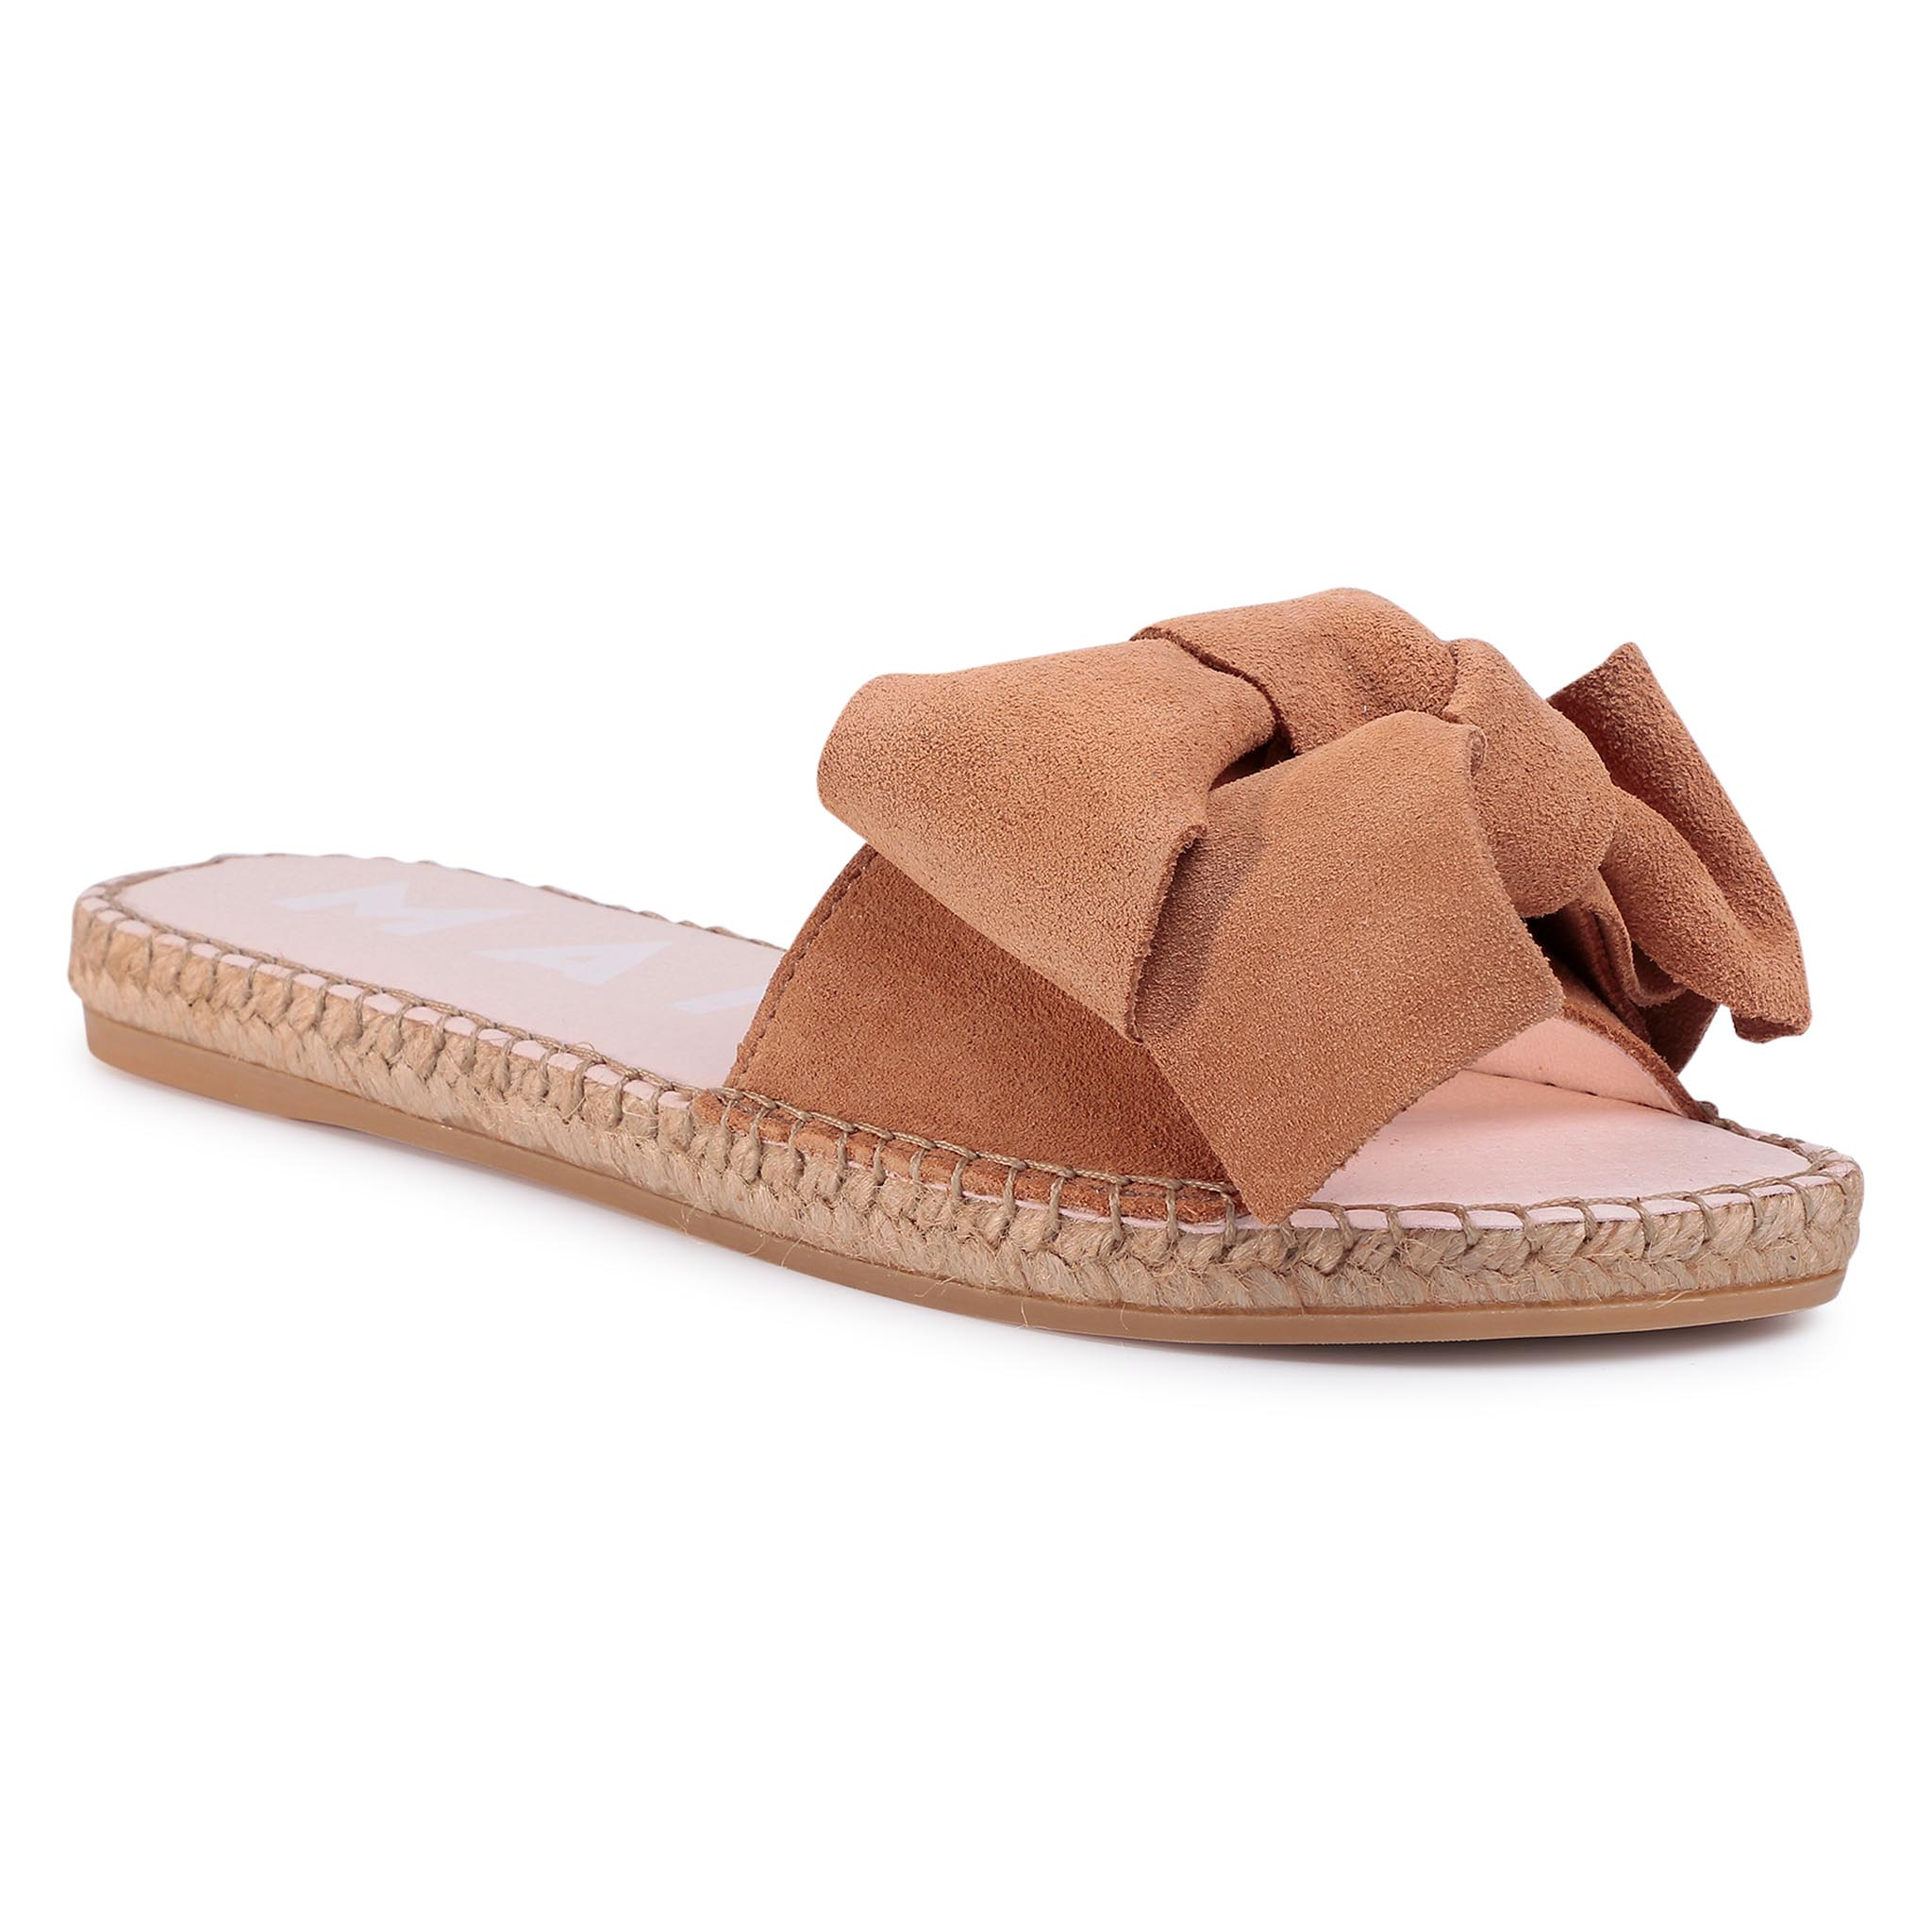 Espadrile MANEBI - Sandals With Bow W 1.1 J0 Cuero